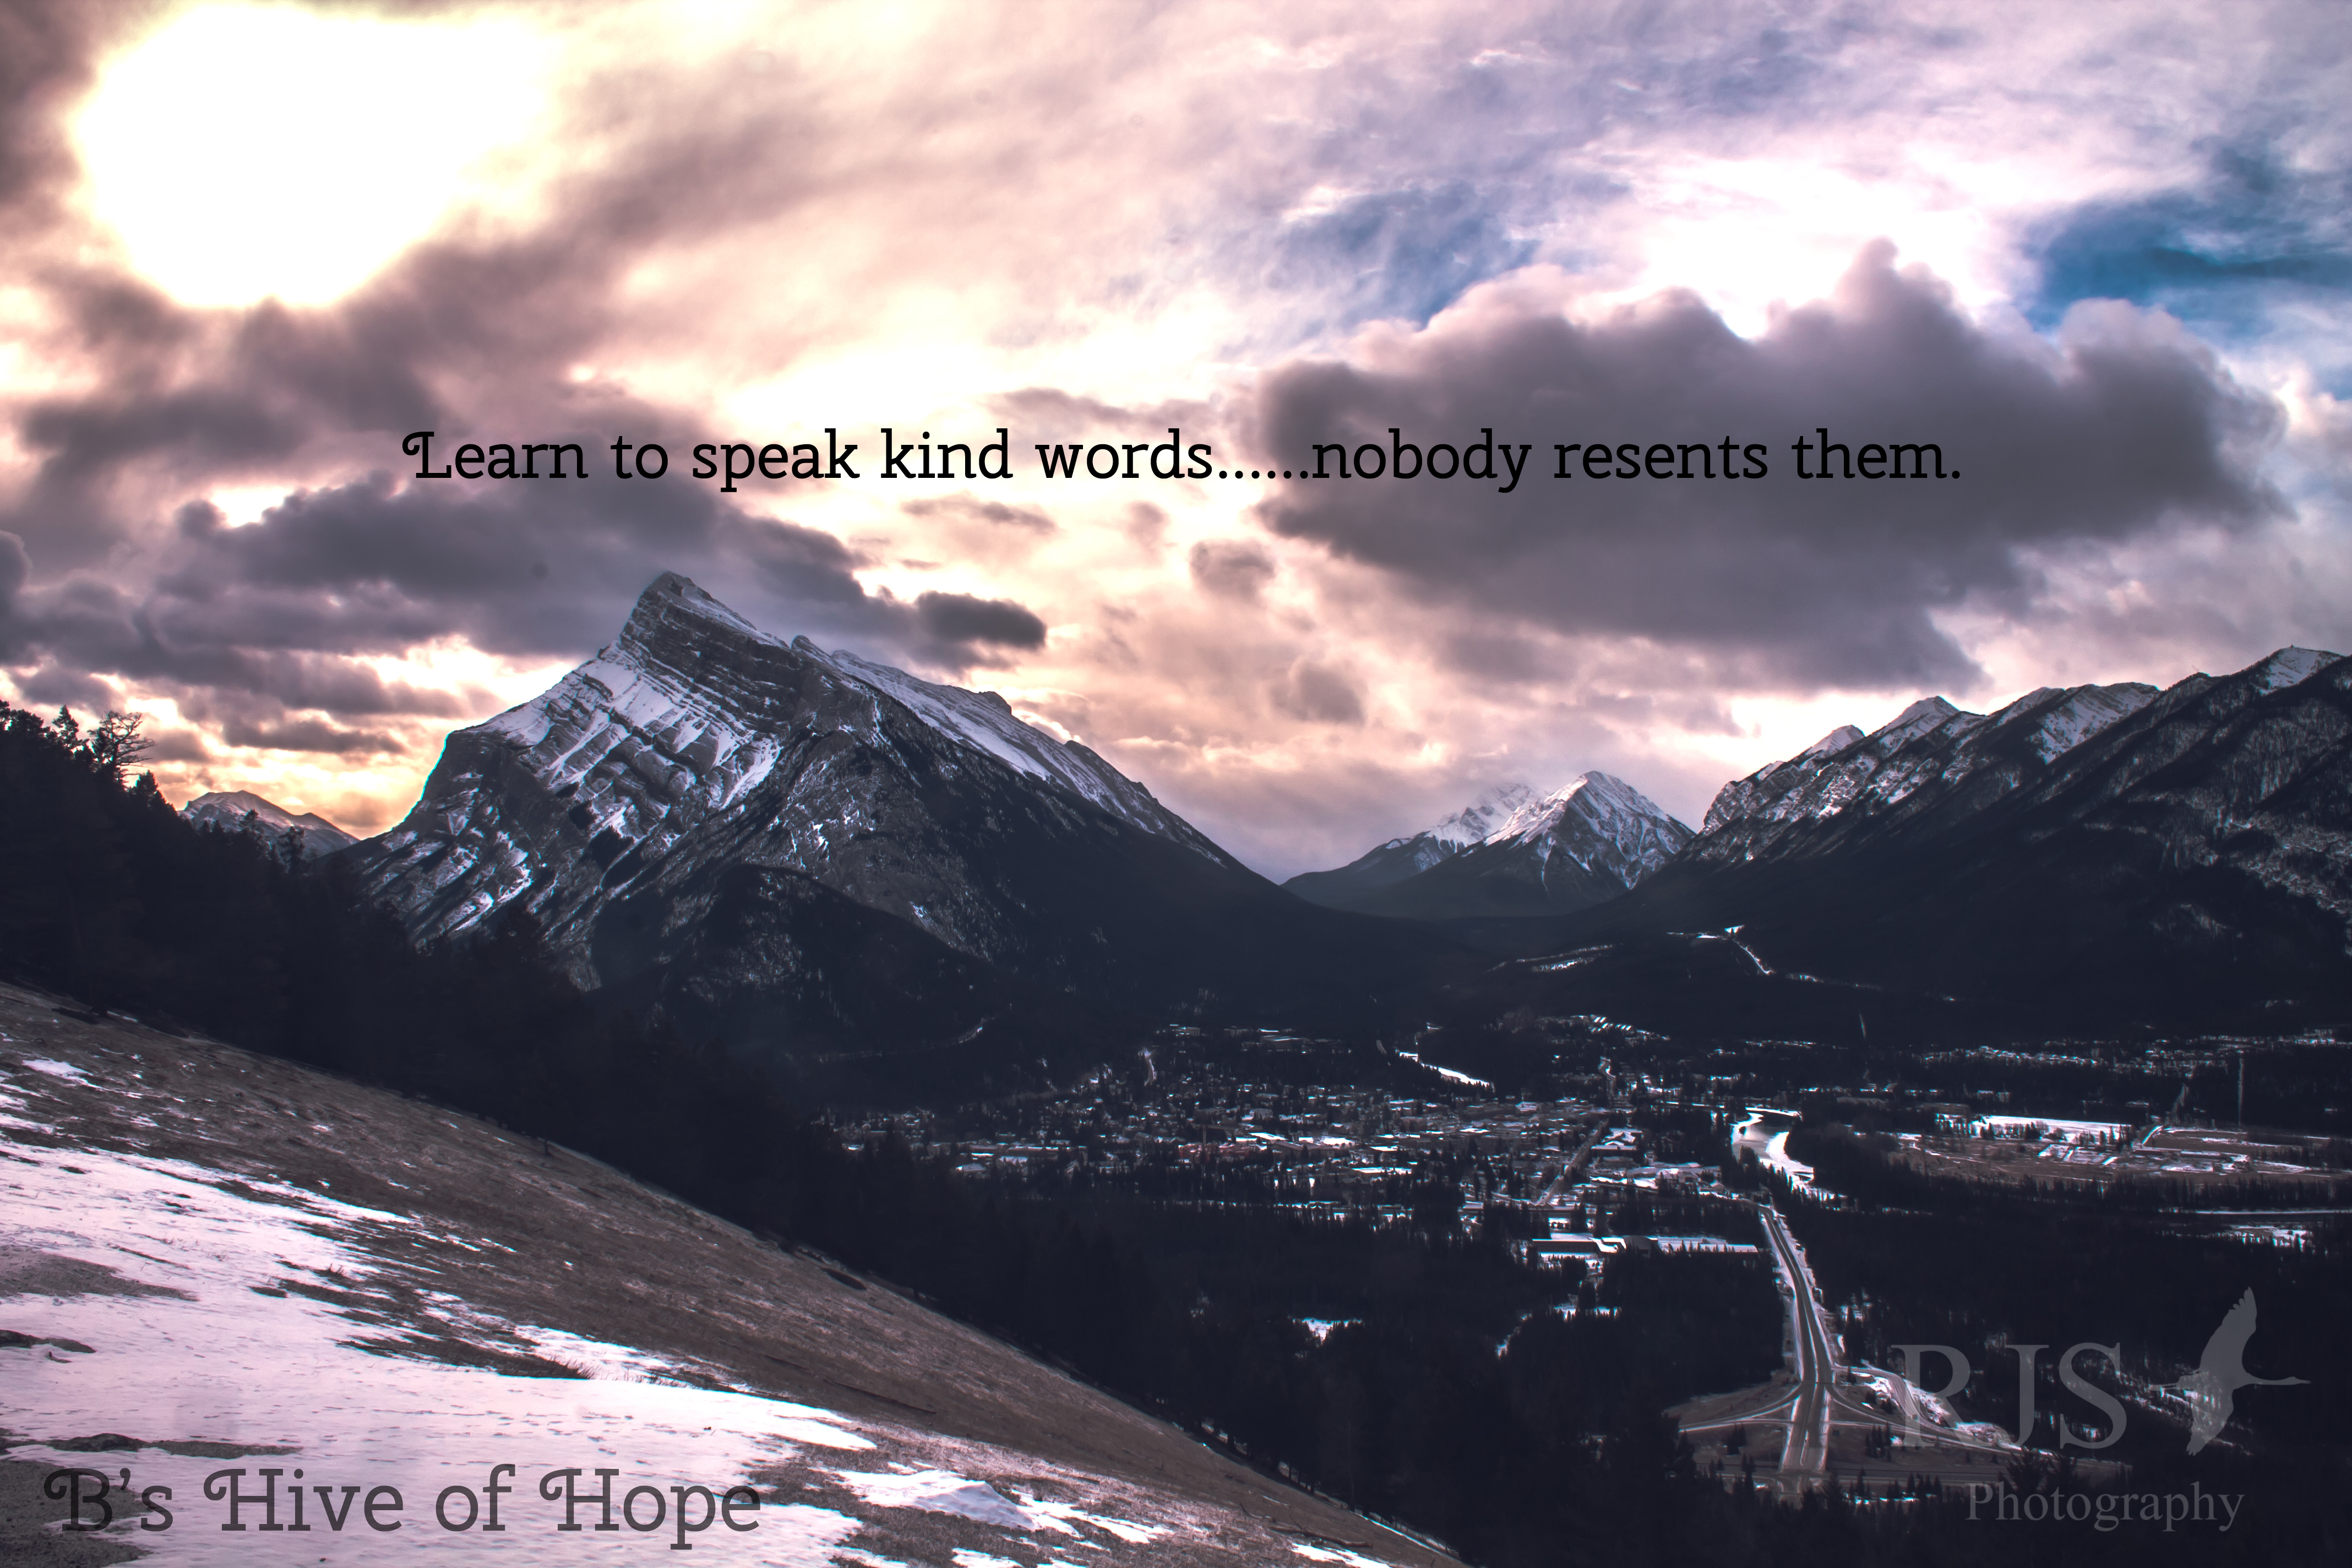 SpeakKindWords